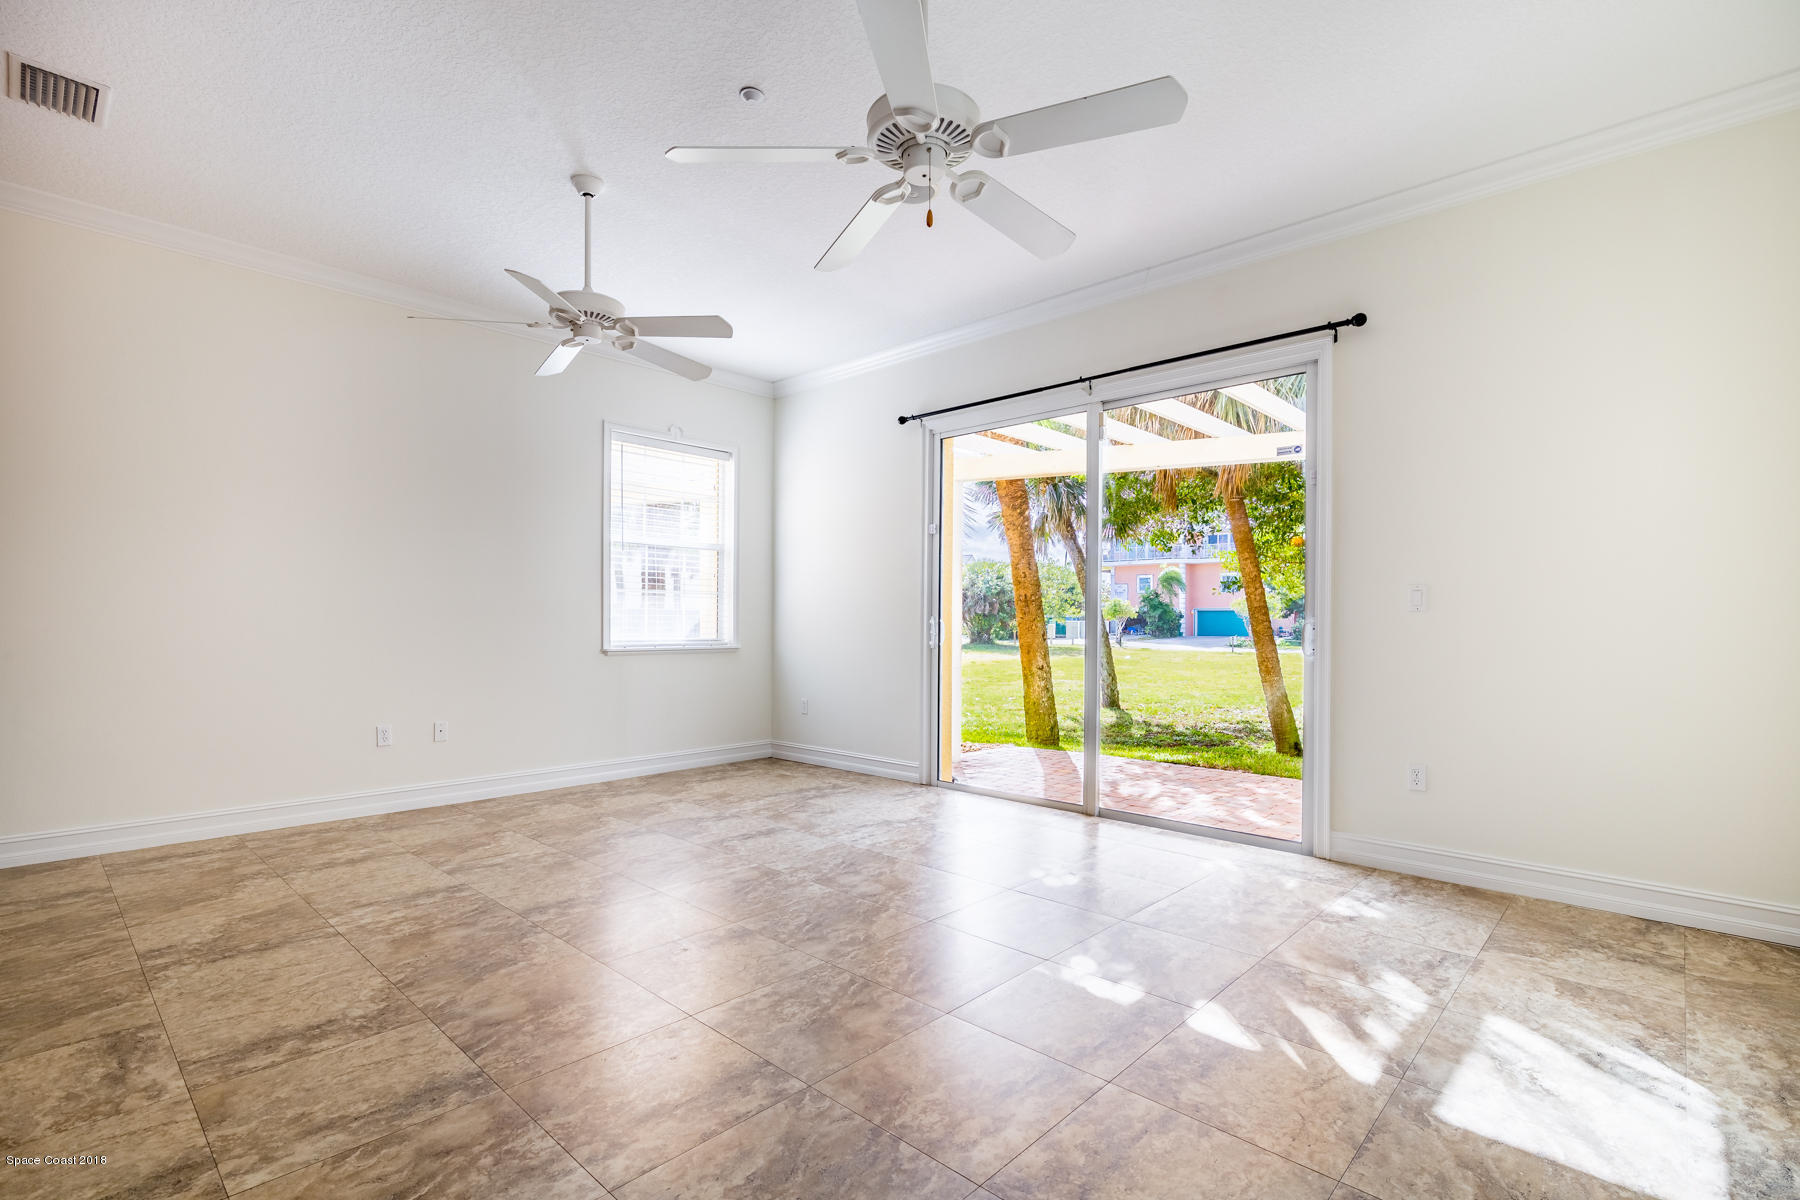 Additional photo for property listing at 603 Washington Cape Canaveral, Florida 32920 United States